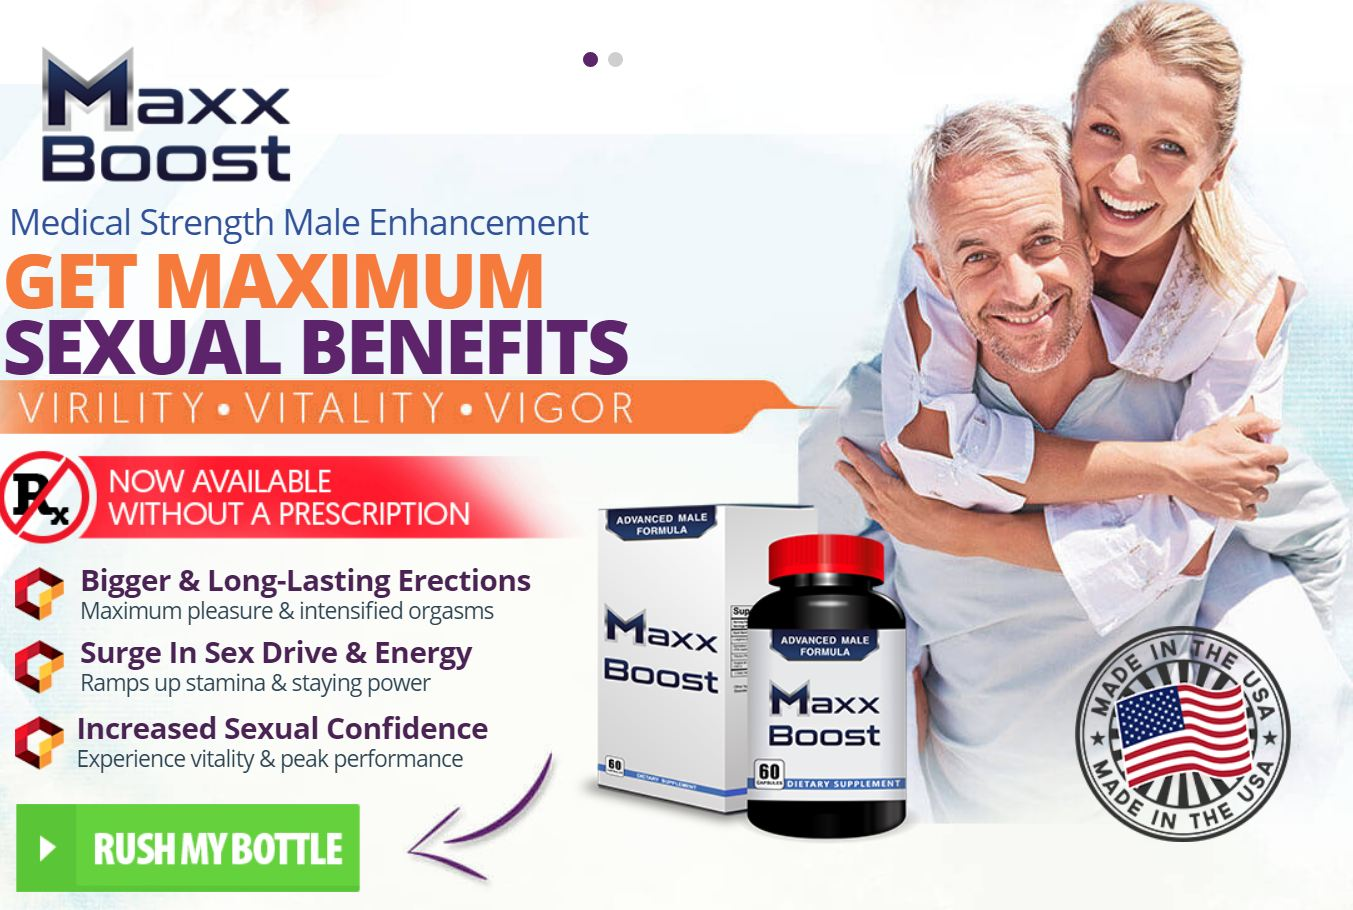 maxx-boost-Male-Enhancement-Supplement-US